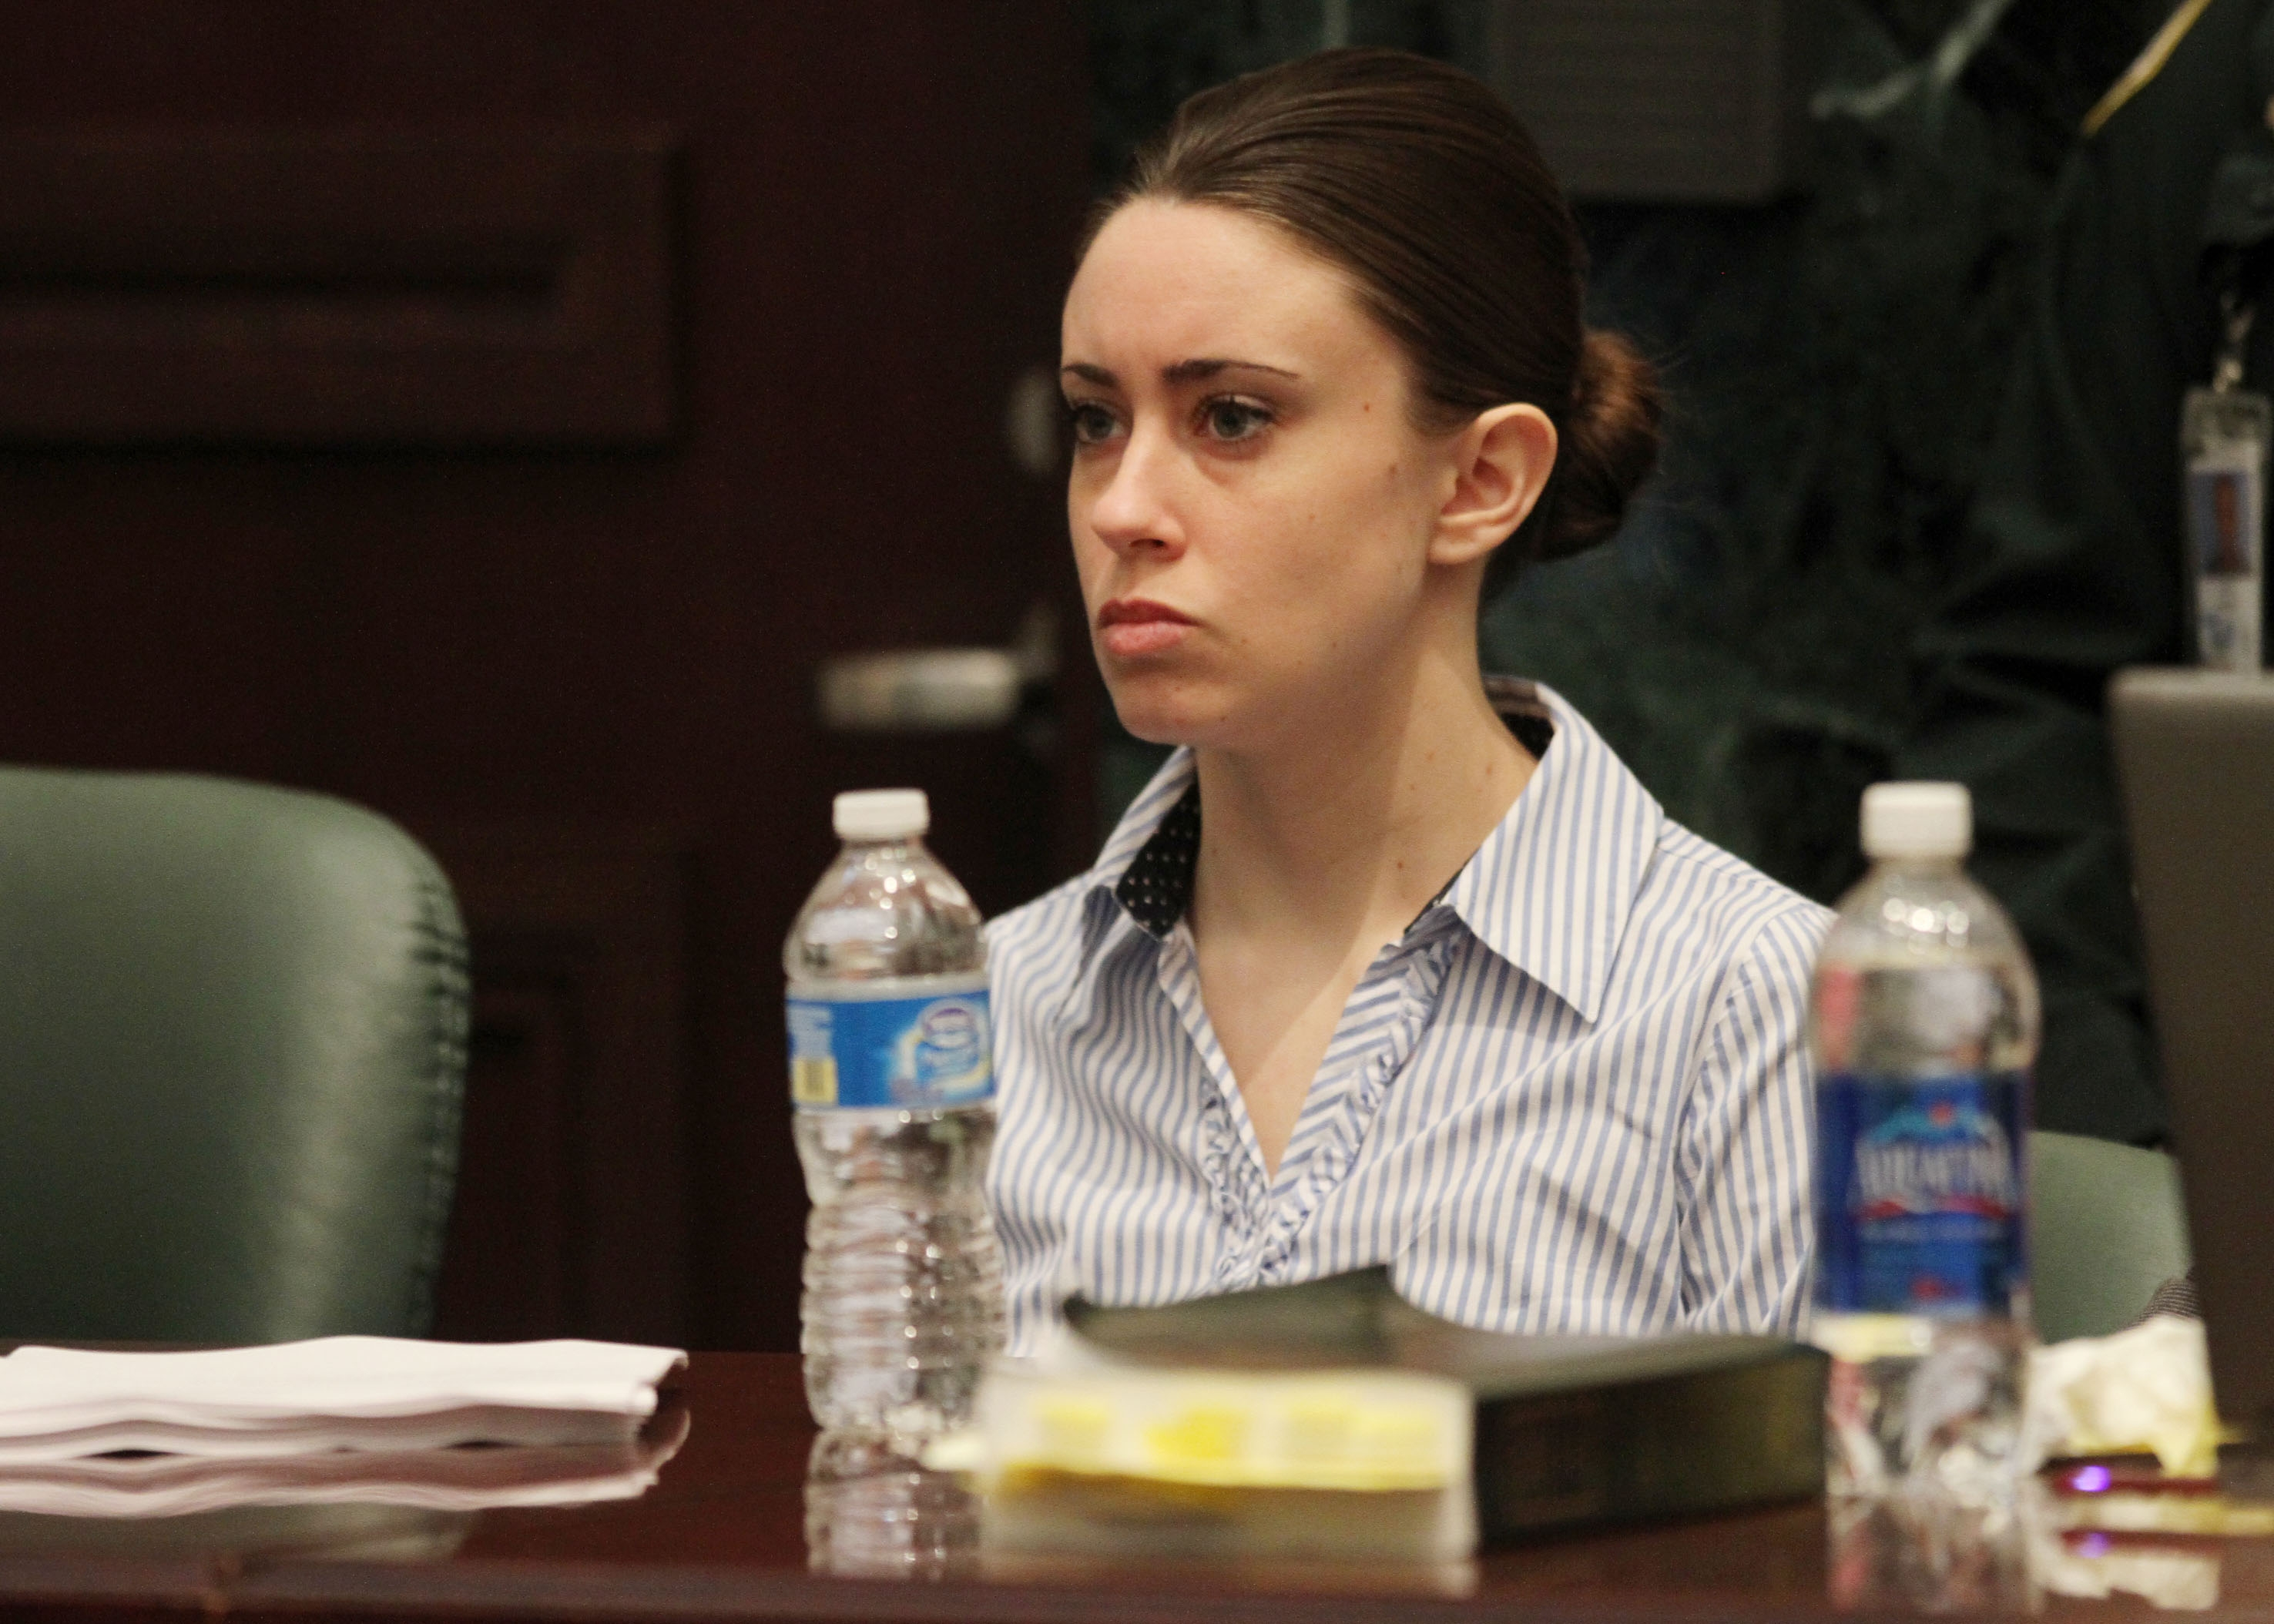 Need to Know News: Jurors continue deliberations in Casey Anthony trial; Indiana police to determine if body found in creek is missing student